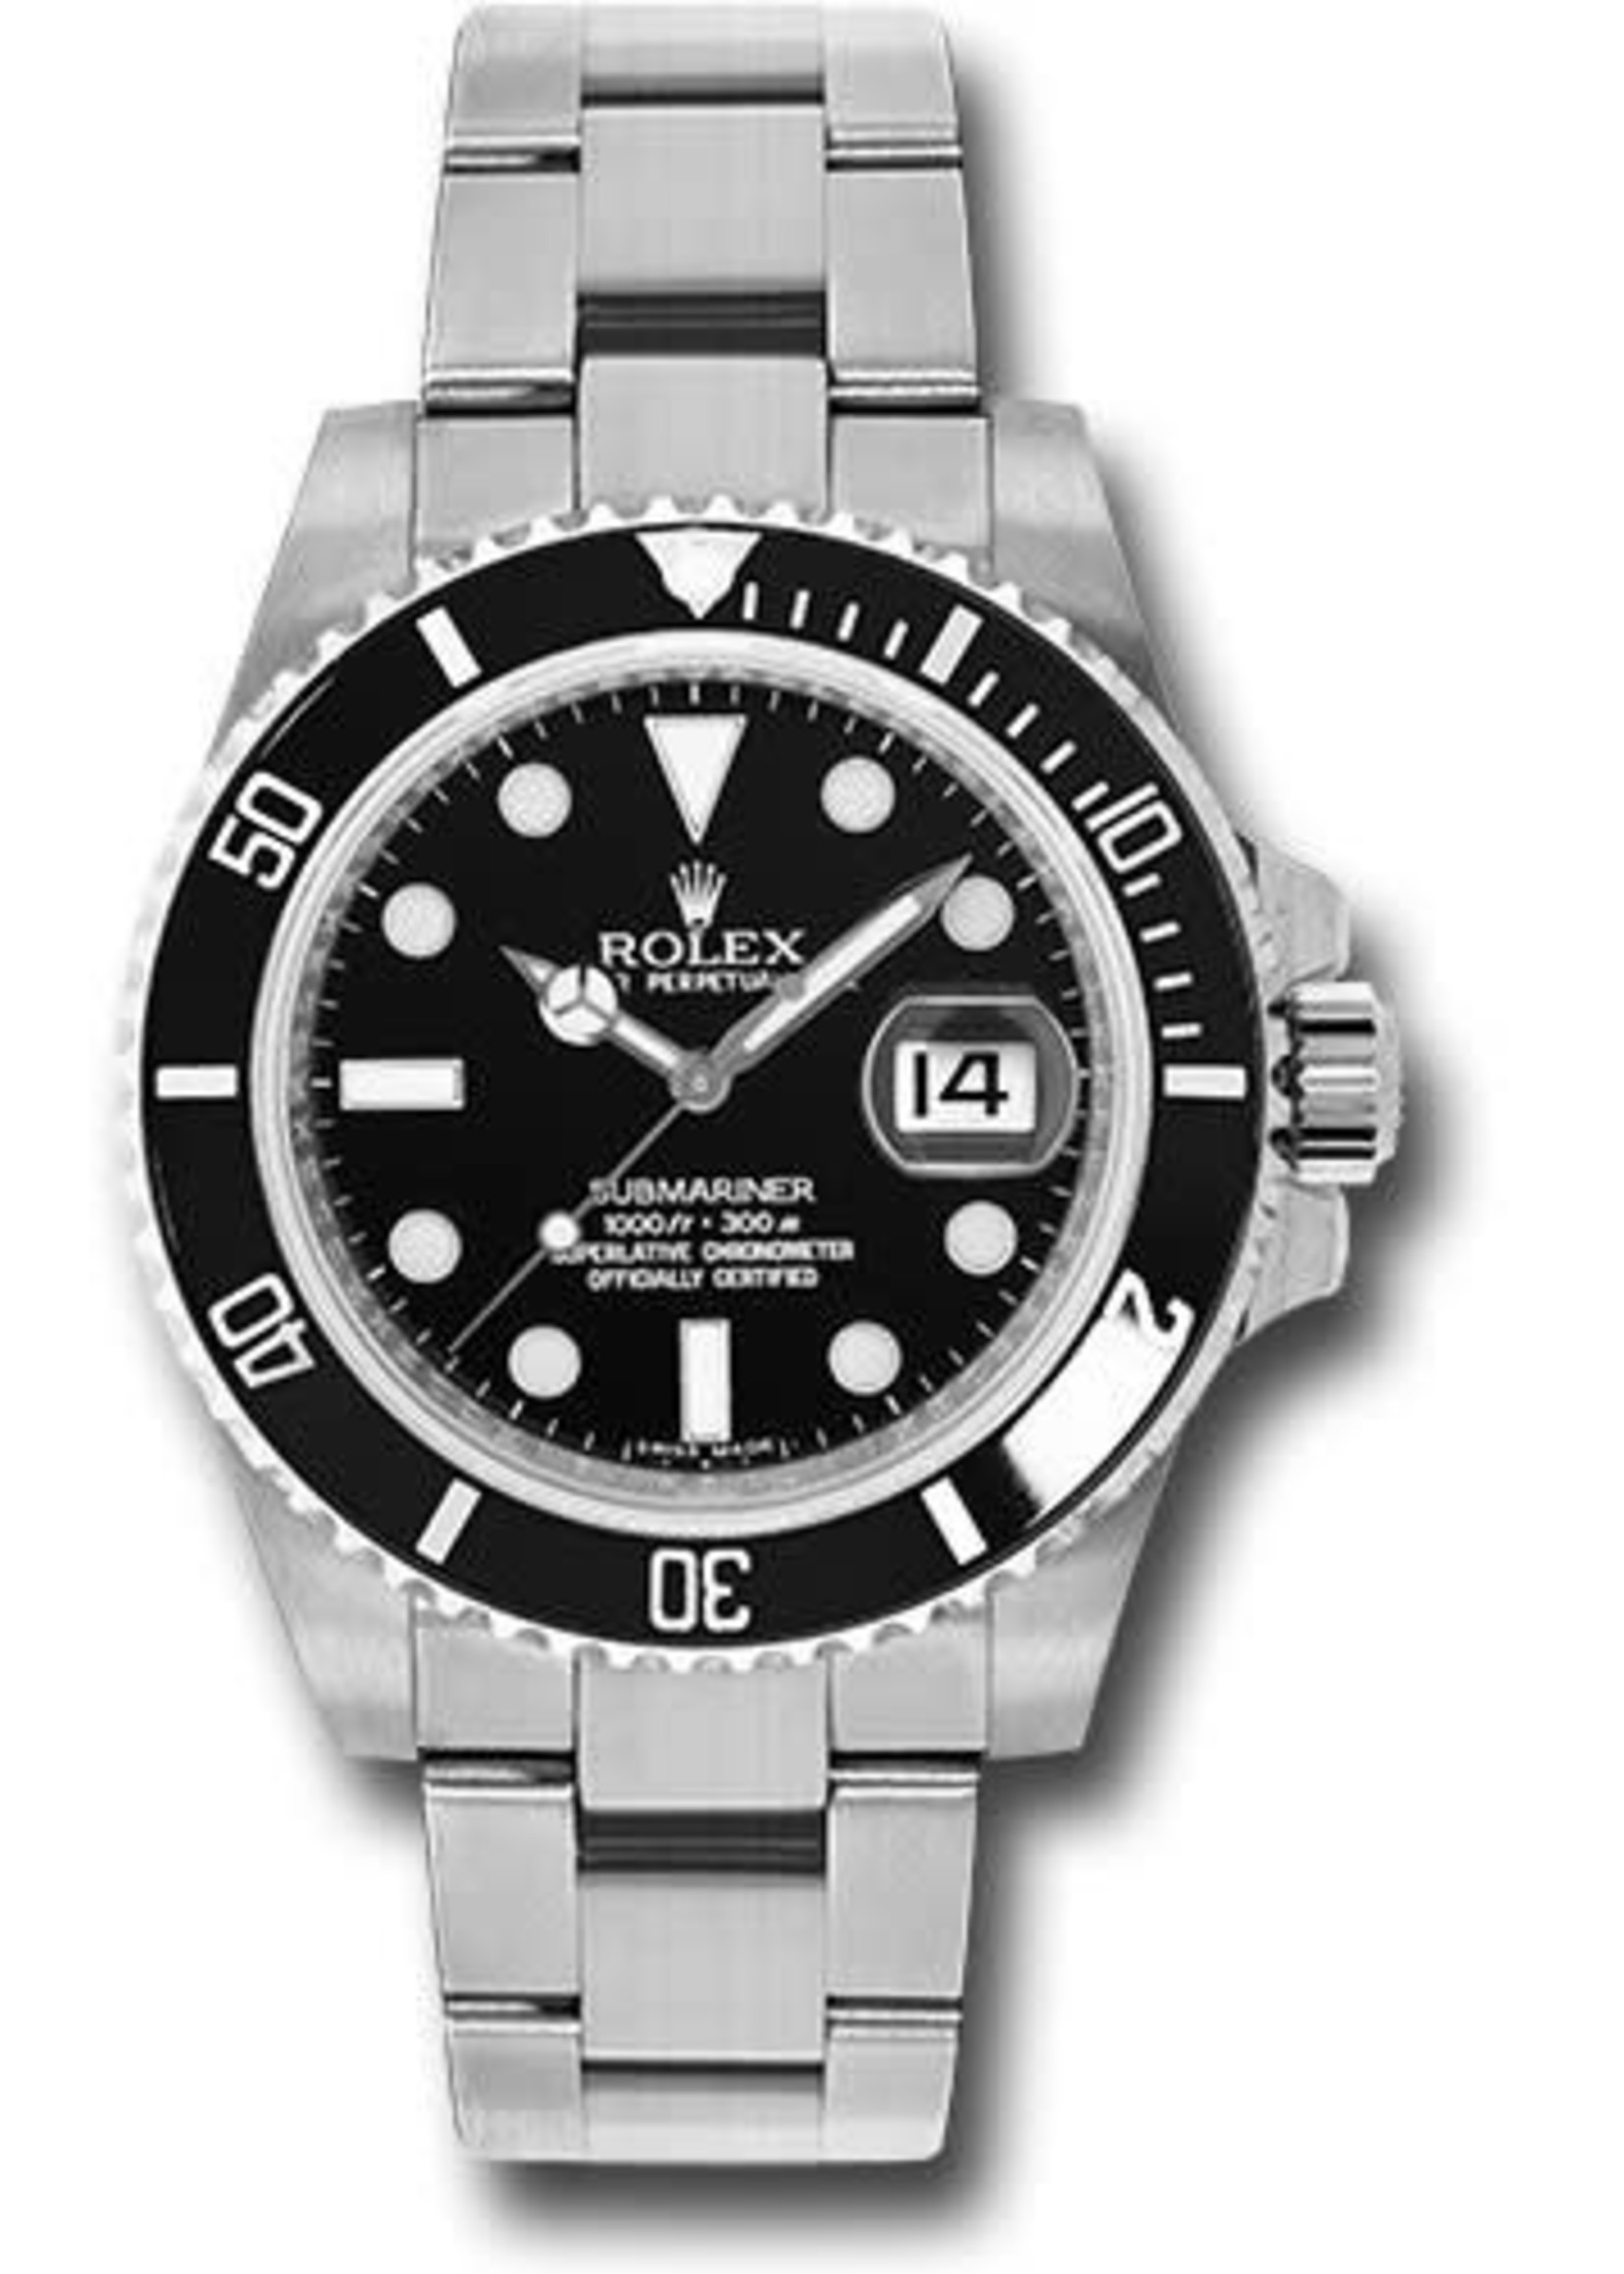 Rolex ROLEX SUBMARINER 40MM 2012 (B+P) #116610LN